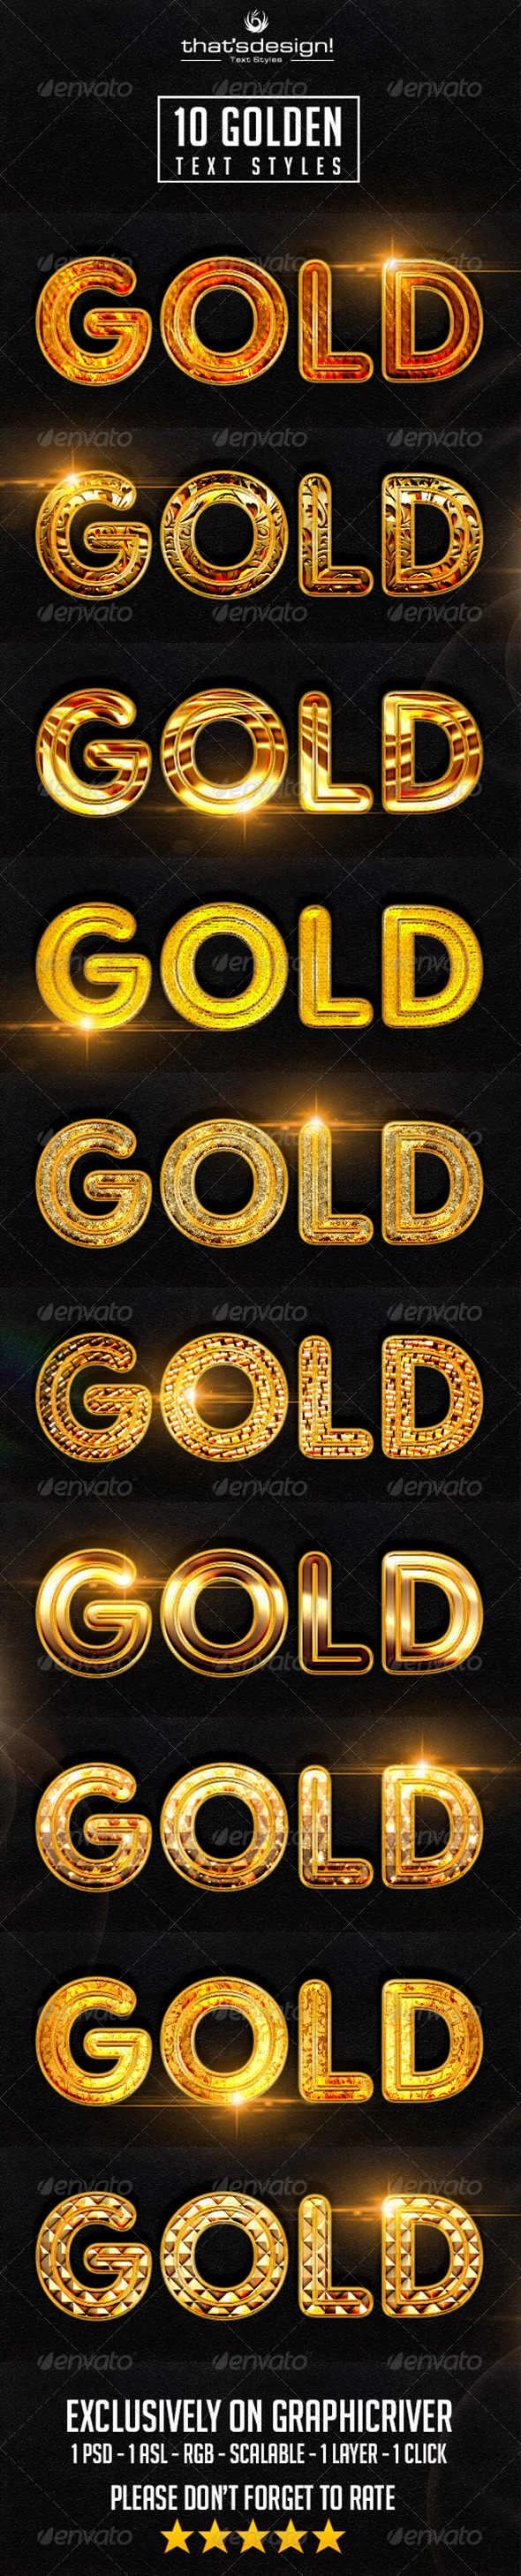 GraphicRiver 10 Golden Text Styles 8334980